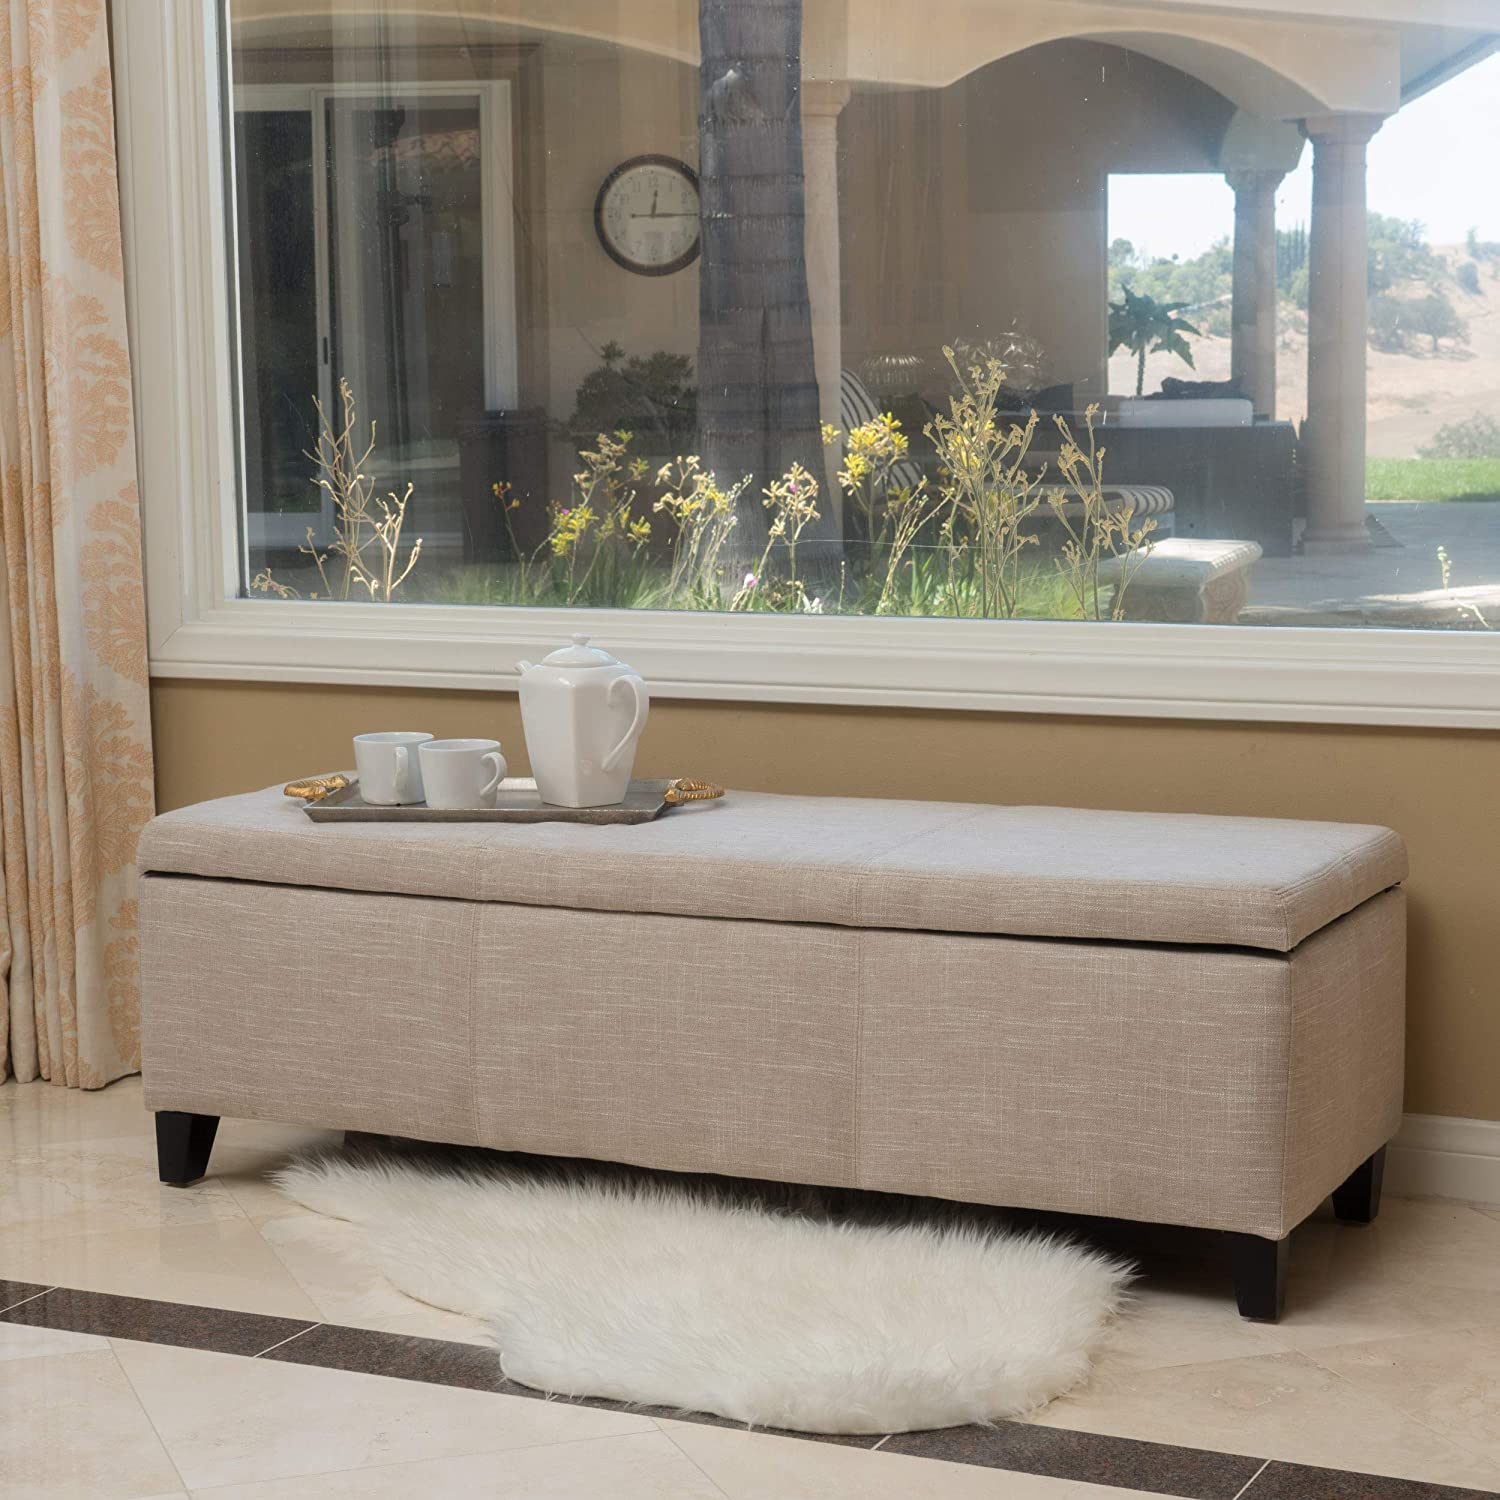 Christopher Knight Home 298339 Living Sarelia Bench Storage Ottoman (Light Beige)